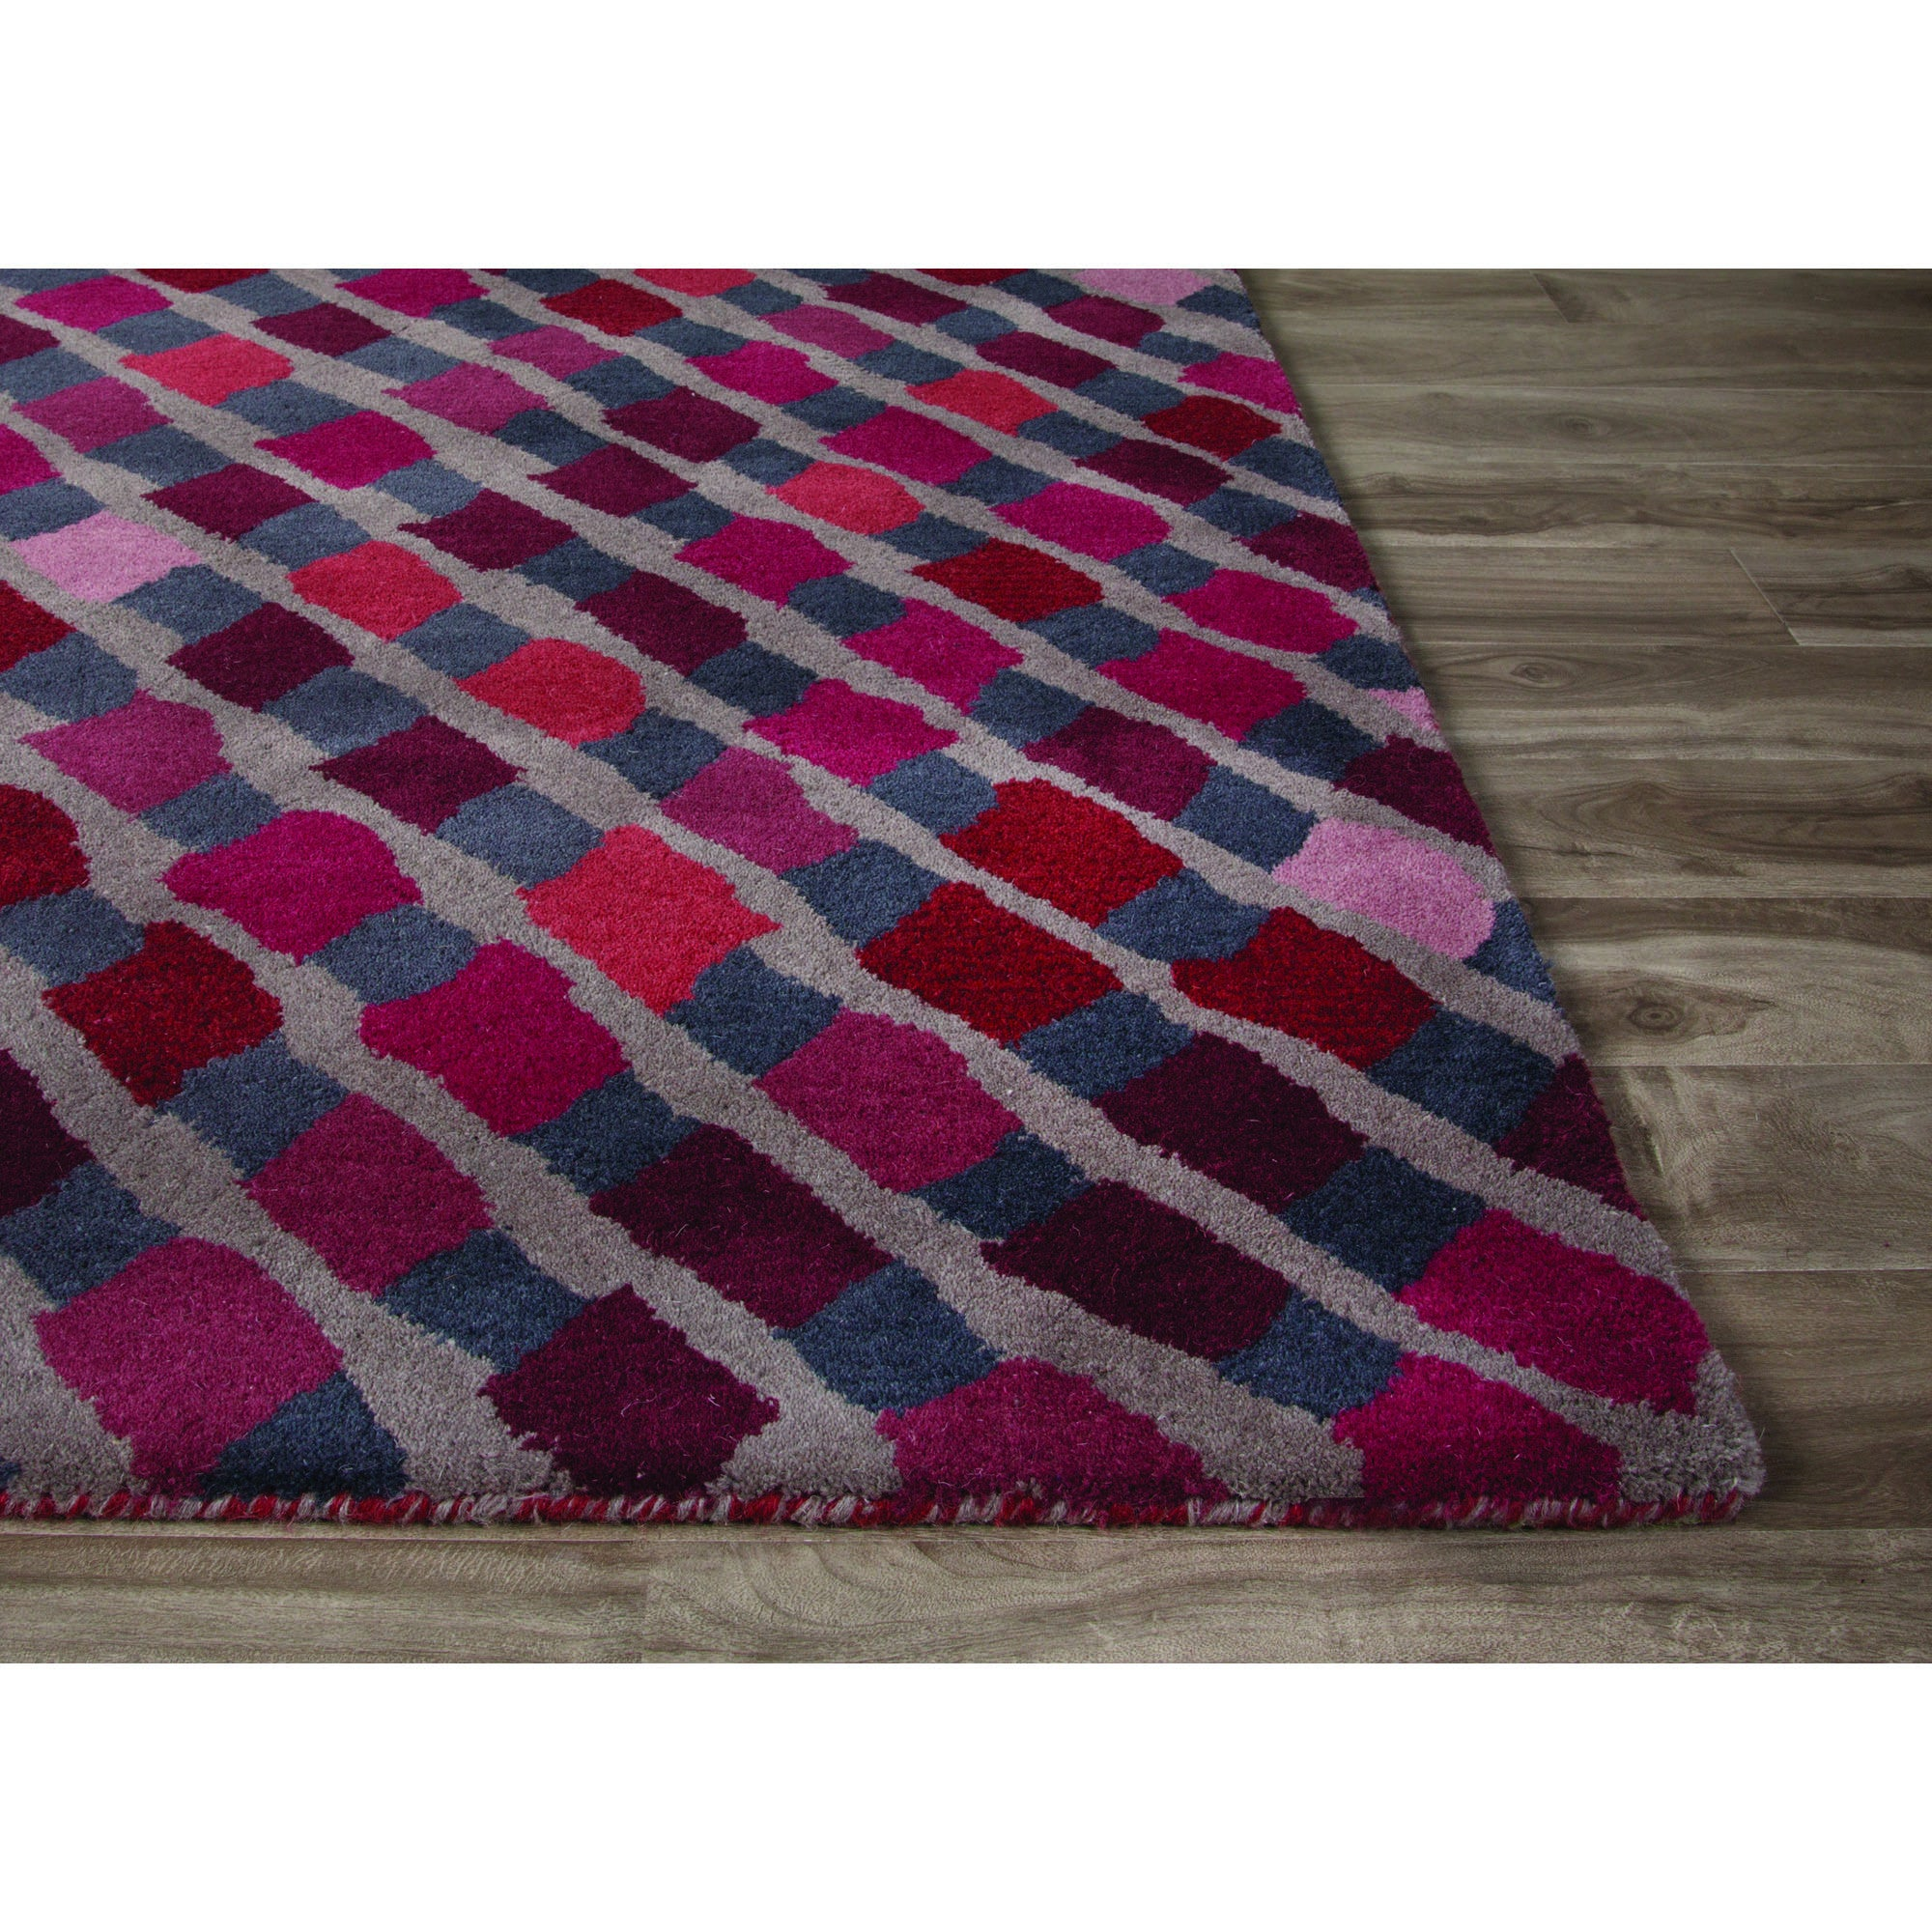 Jaipur rugs modern geometric pattern purple wool area rug for Purple area rugs contemporary